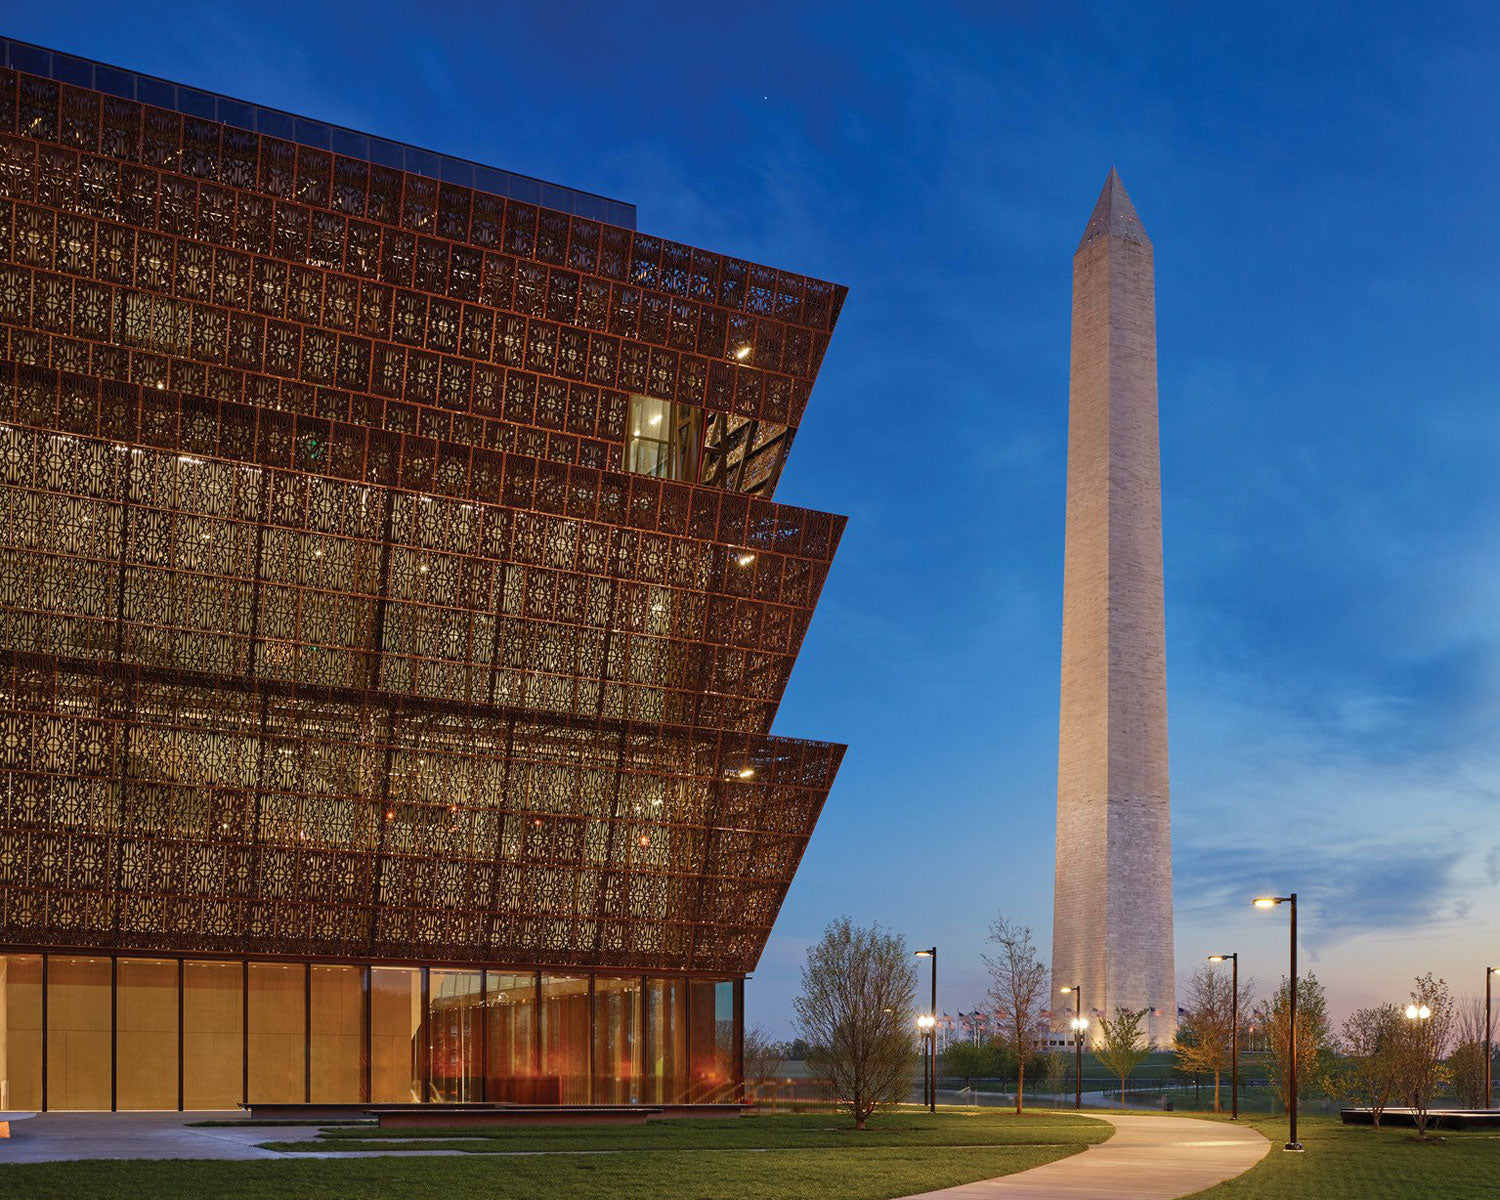 New Stockist: National Museum of African American History and Culture in Washington, D.C